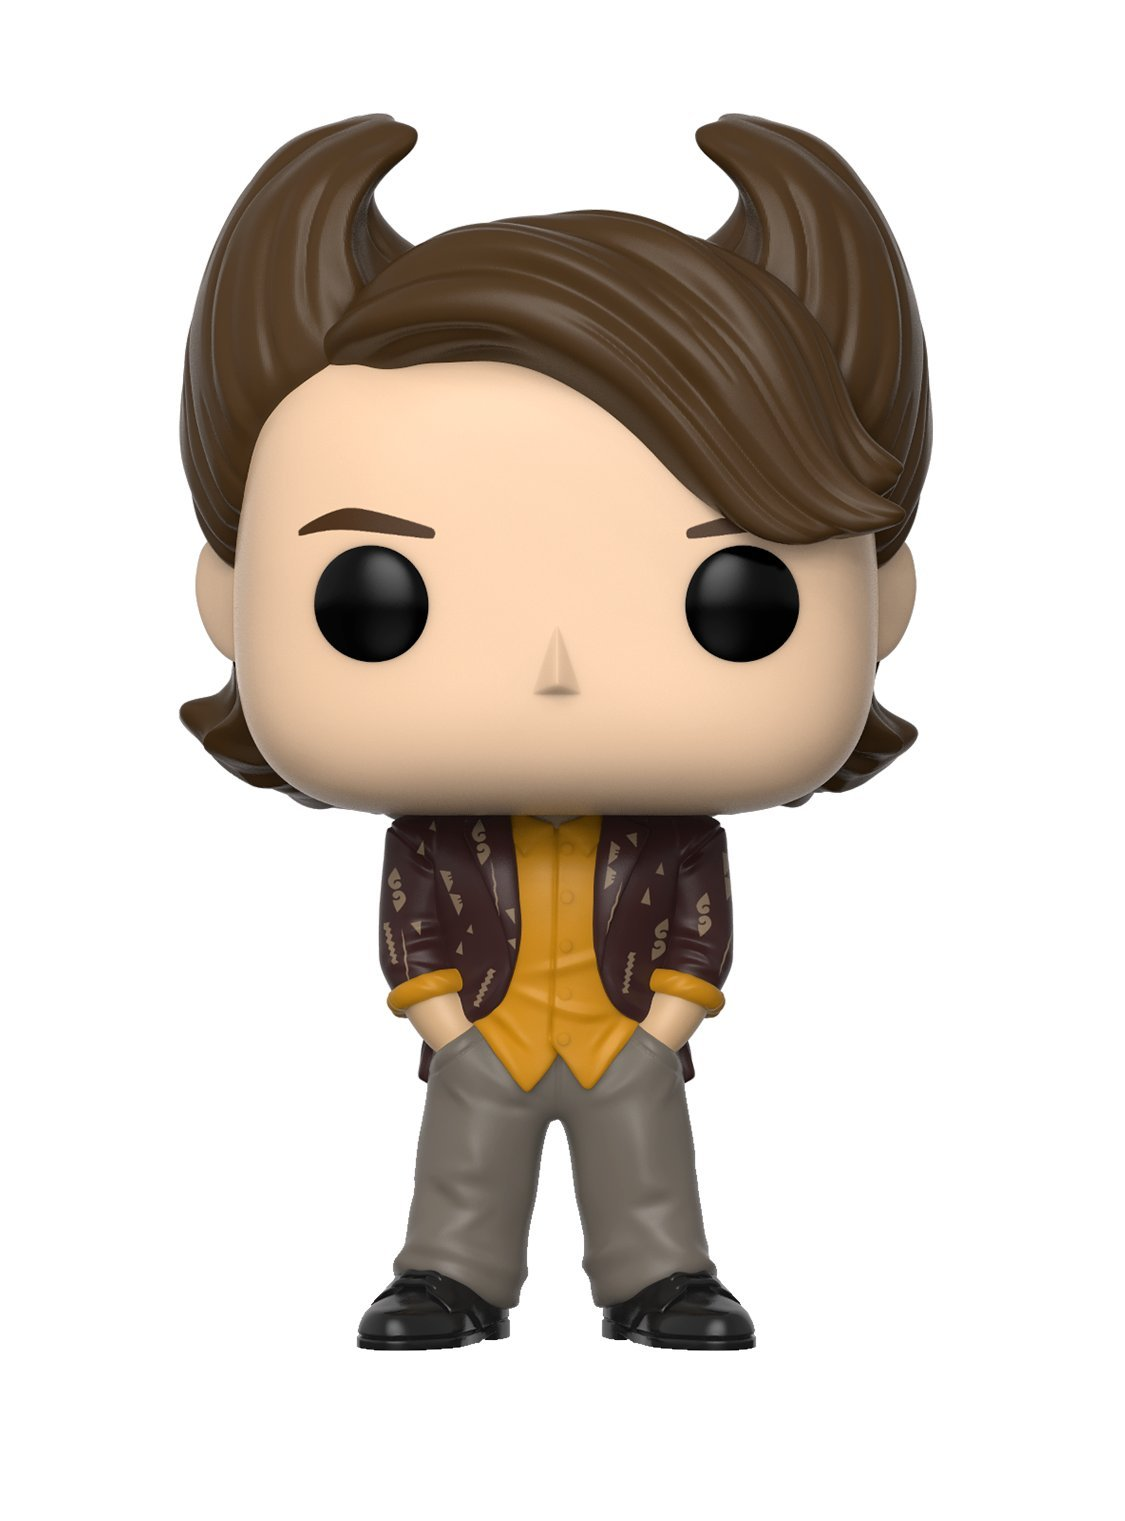 ویکالا · خرید  اصل اورجینال · خرید از آمازون · Funko Pop Television: Friends - 80's Hair Chandler Collectible Figure, Multicolor wekala · ویکالا